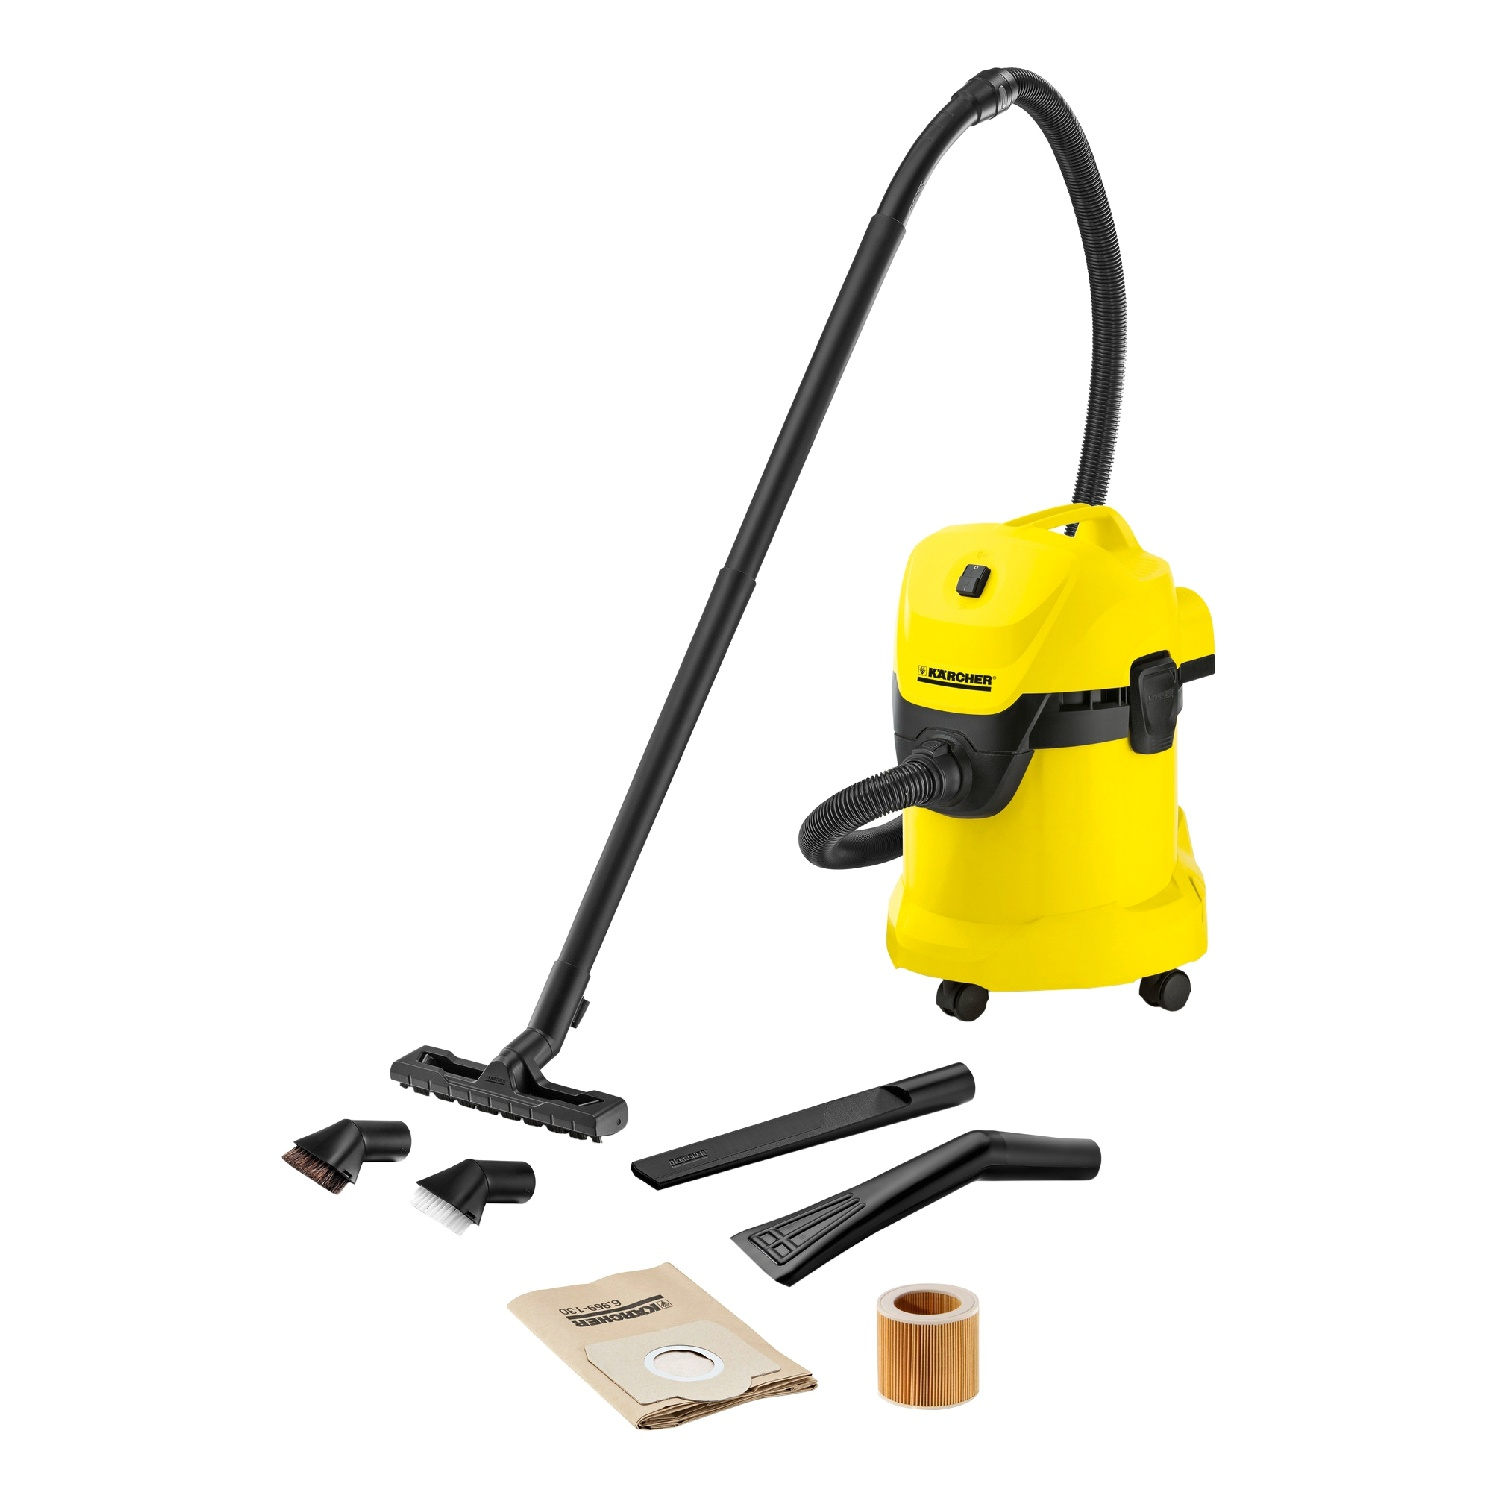 цена на Пылесос Karcher WD 3 CAR VAC,